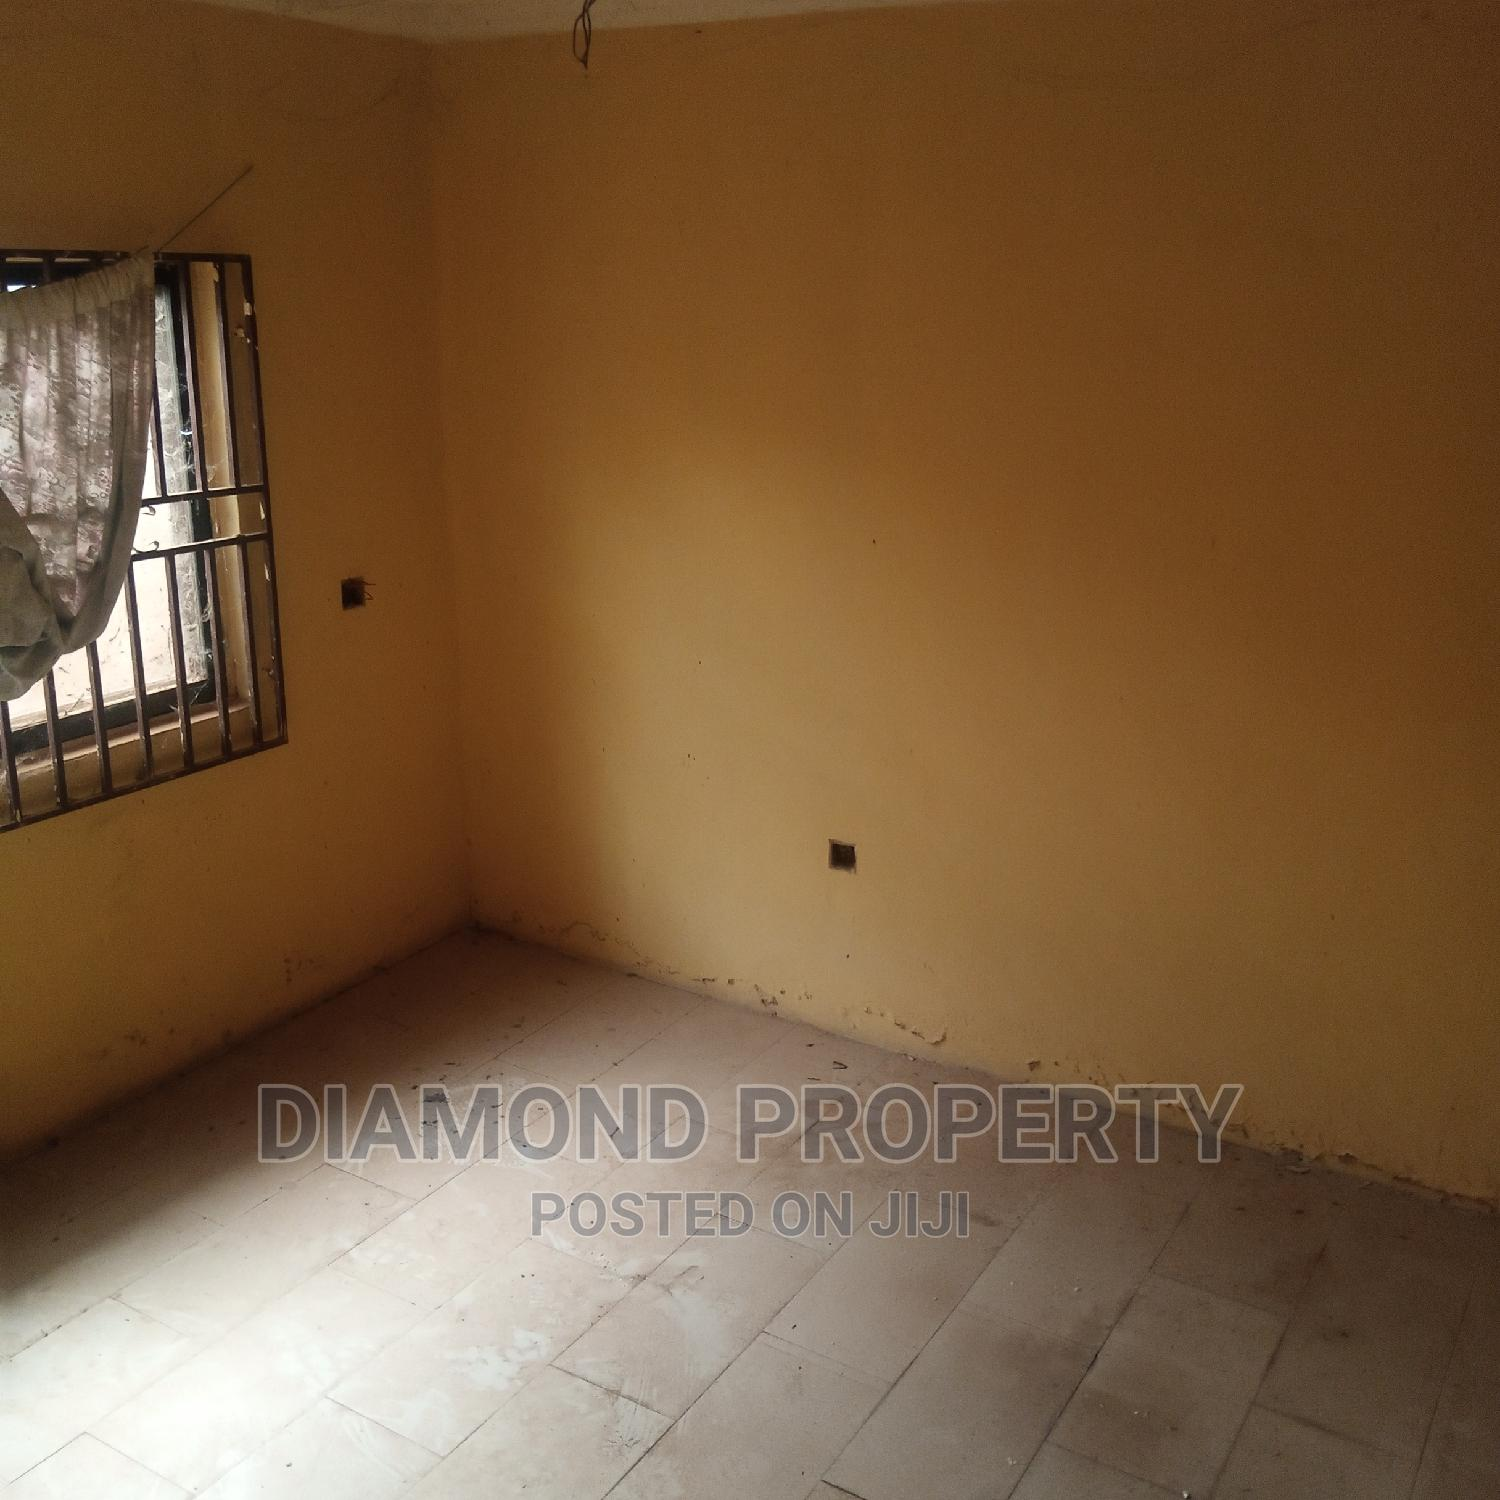 Furnished 1bdrm House in Diamond Property, Ibadan for Rent